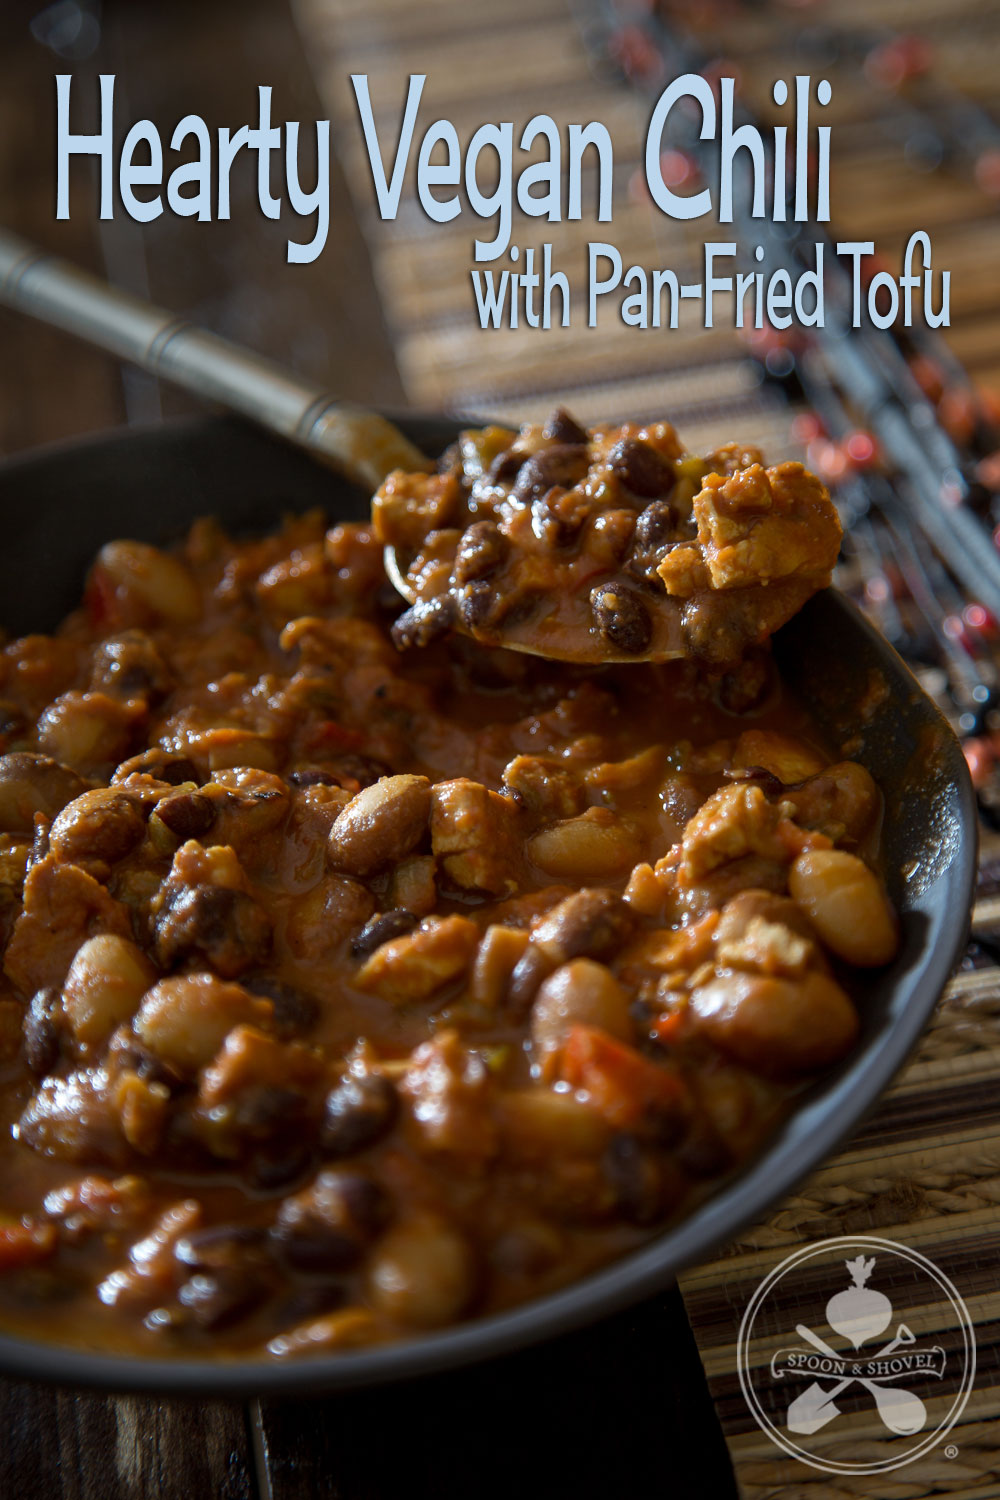 Hearty vegan chili with pan-fried tofu from The Spoon + Shovel